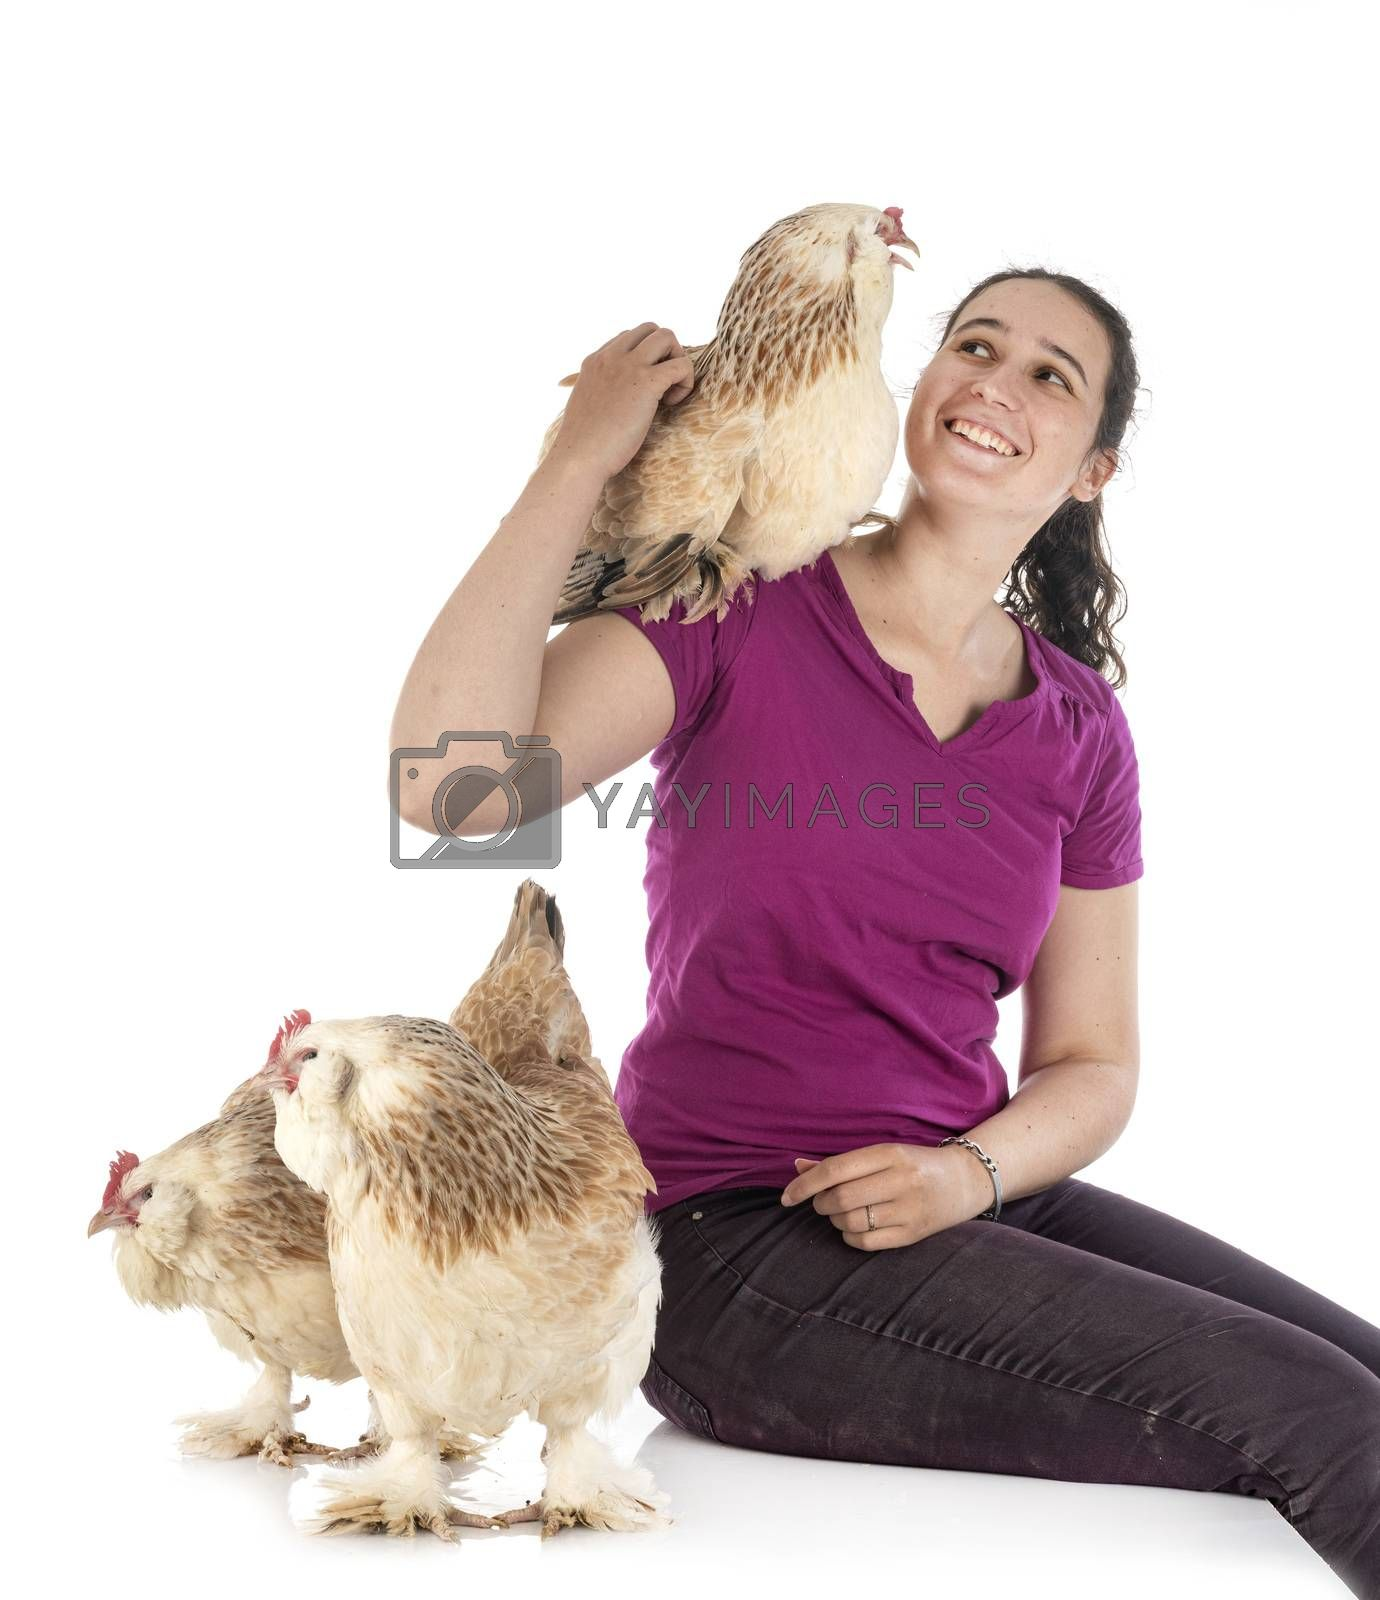 Faverolles chicken and woman in front of white background